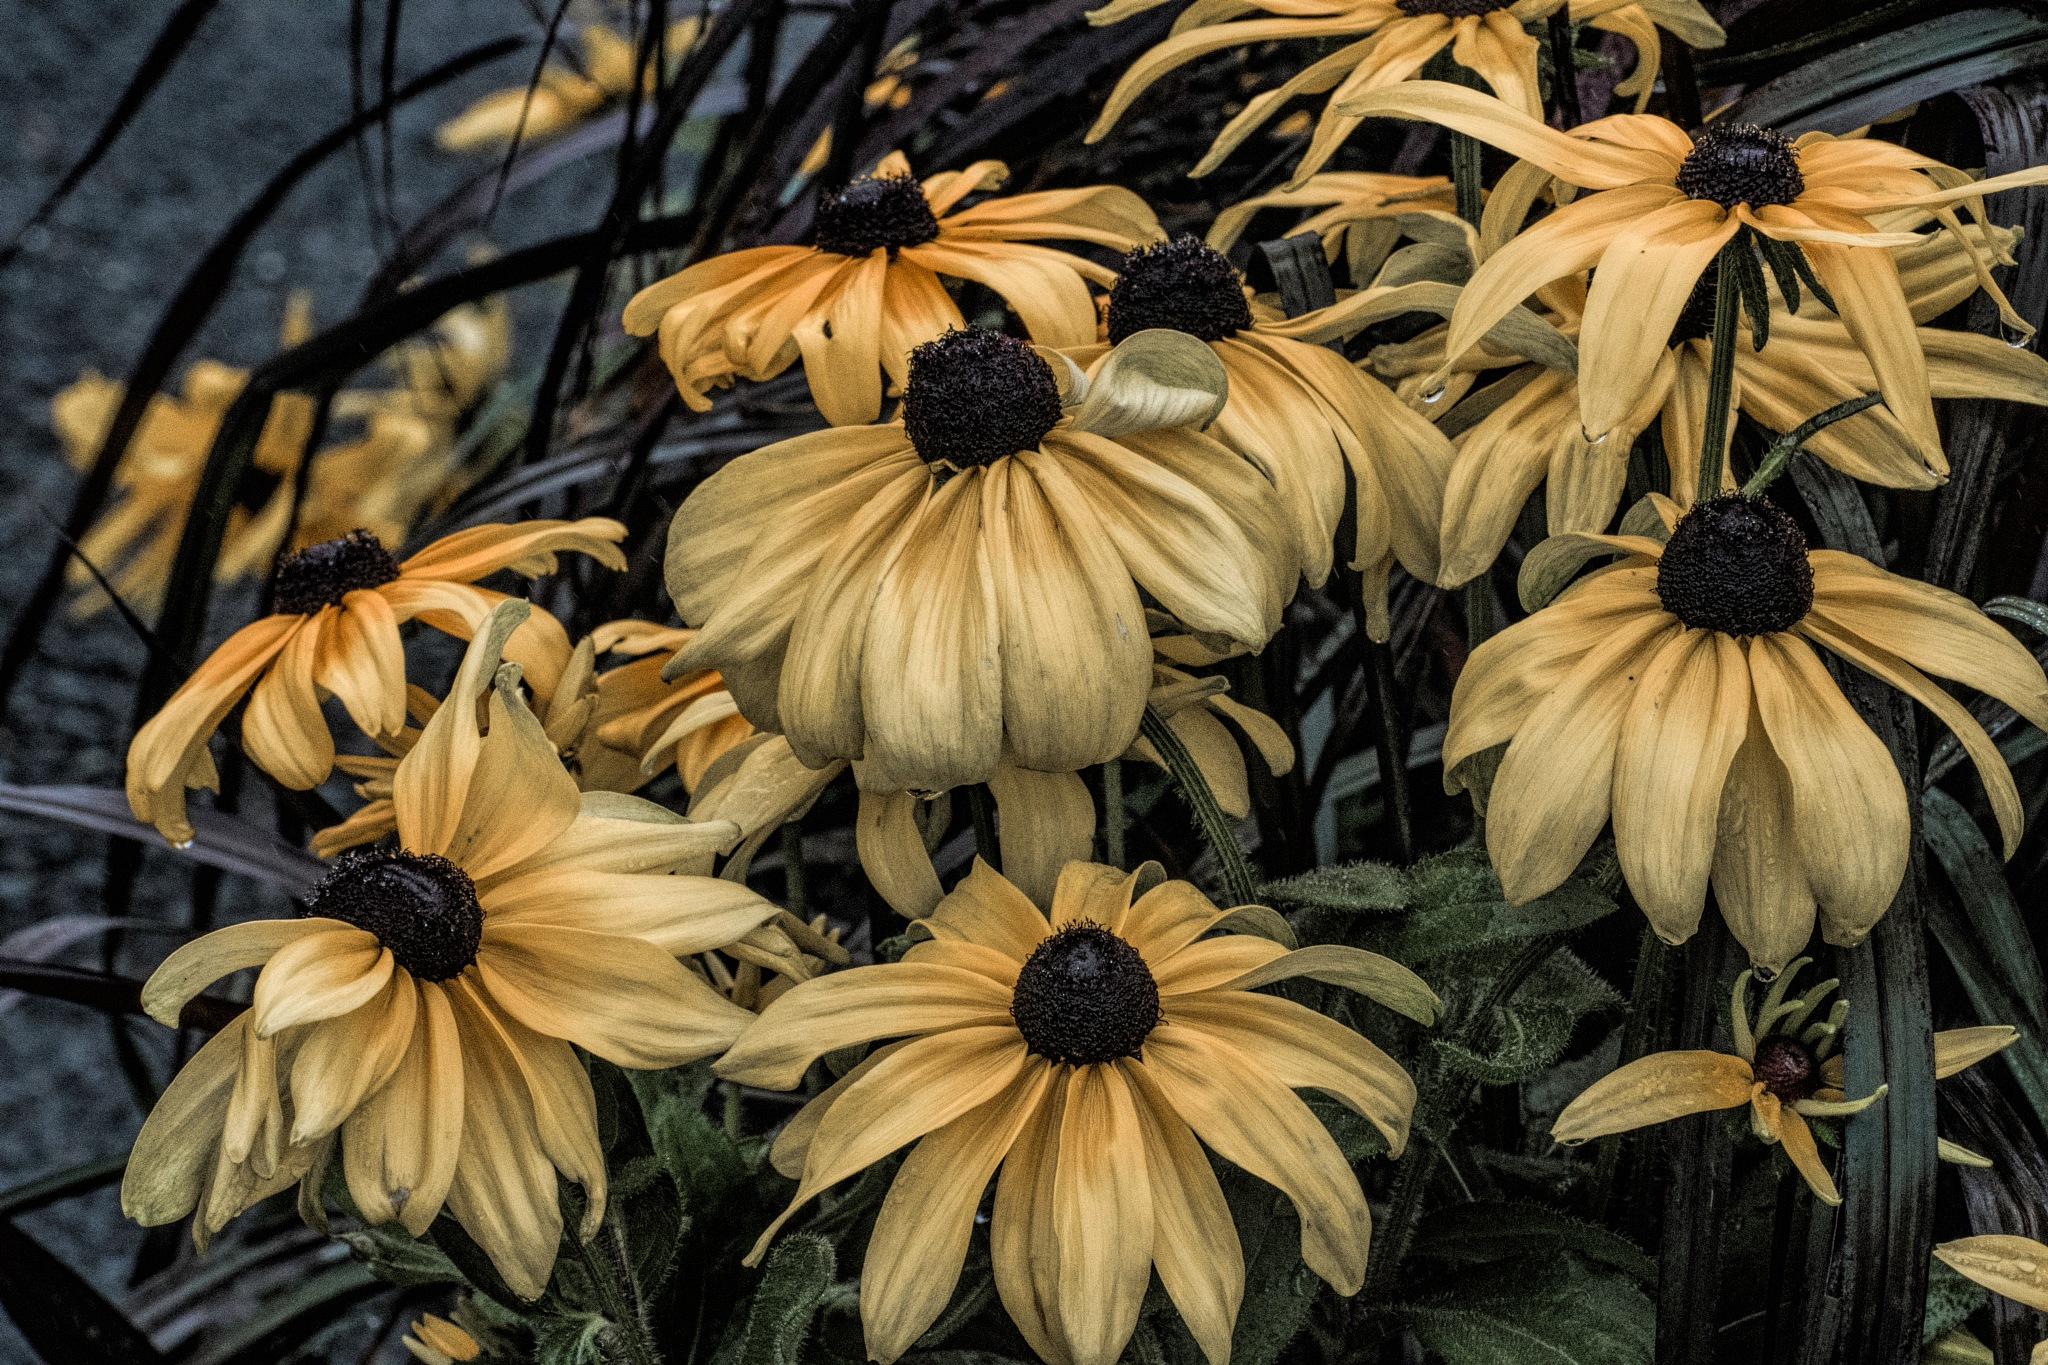 Flower 9-2-29 by JohnEllingson